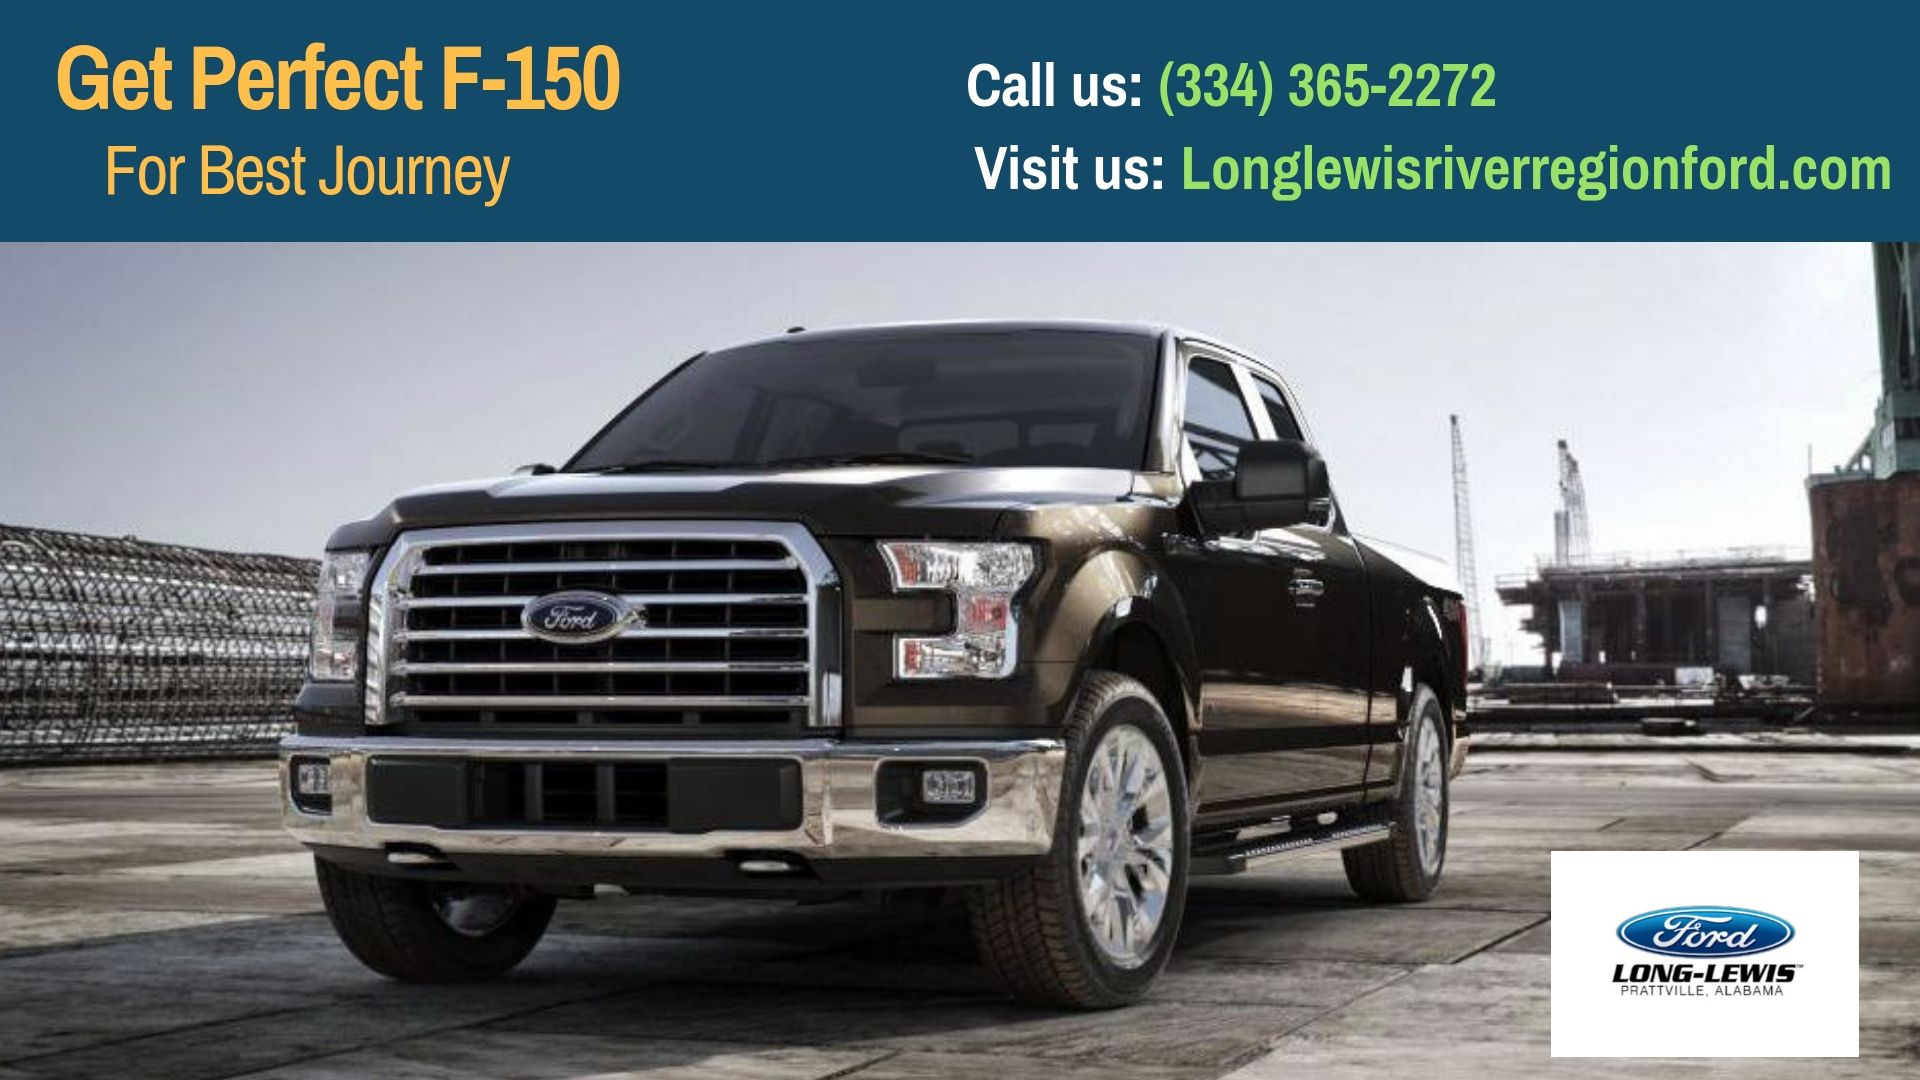 Are You Looking For Ford F 150 Our Long Lewis Of The River Region